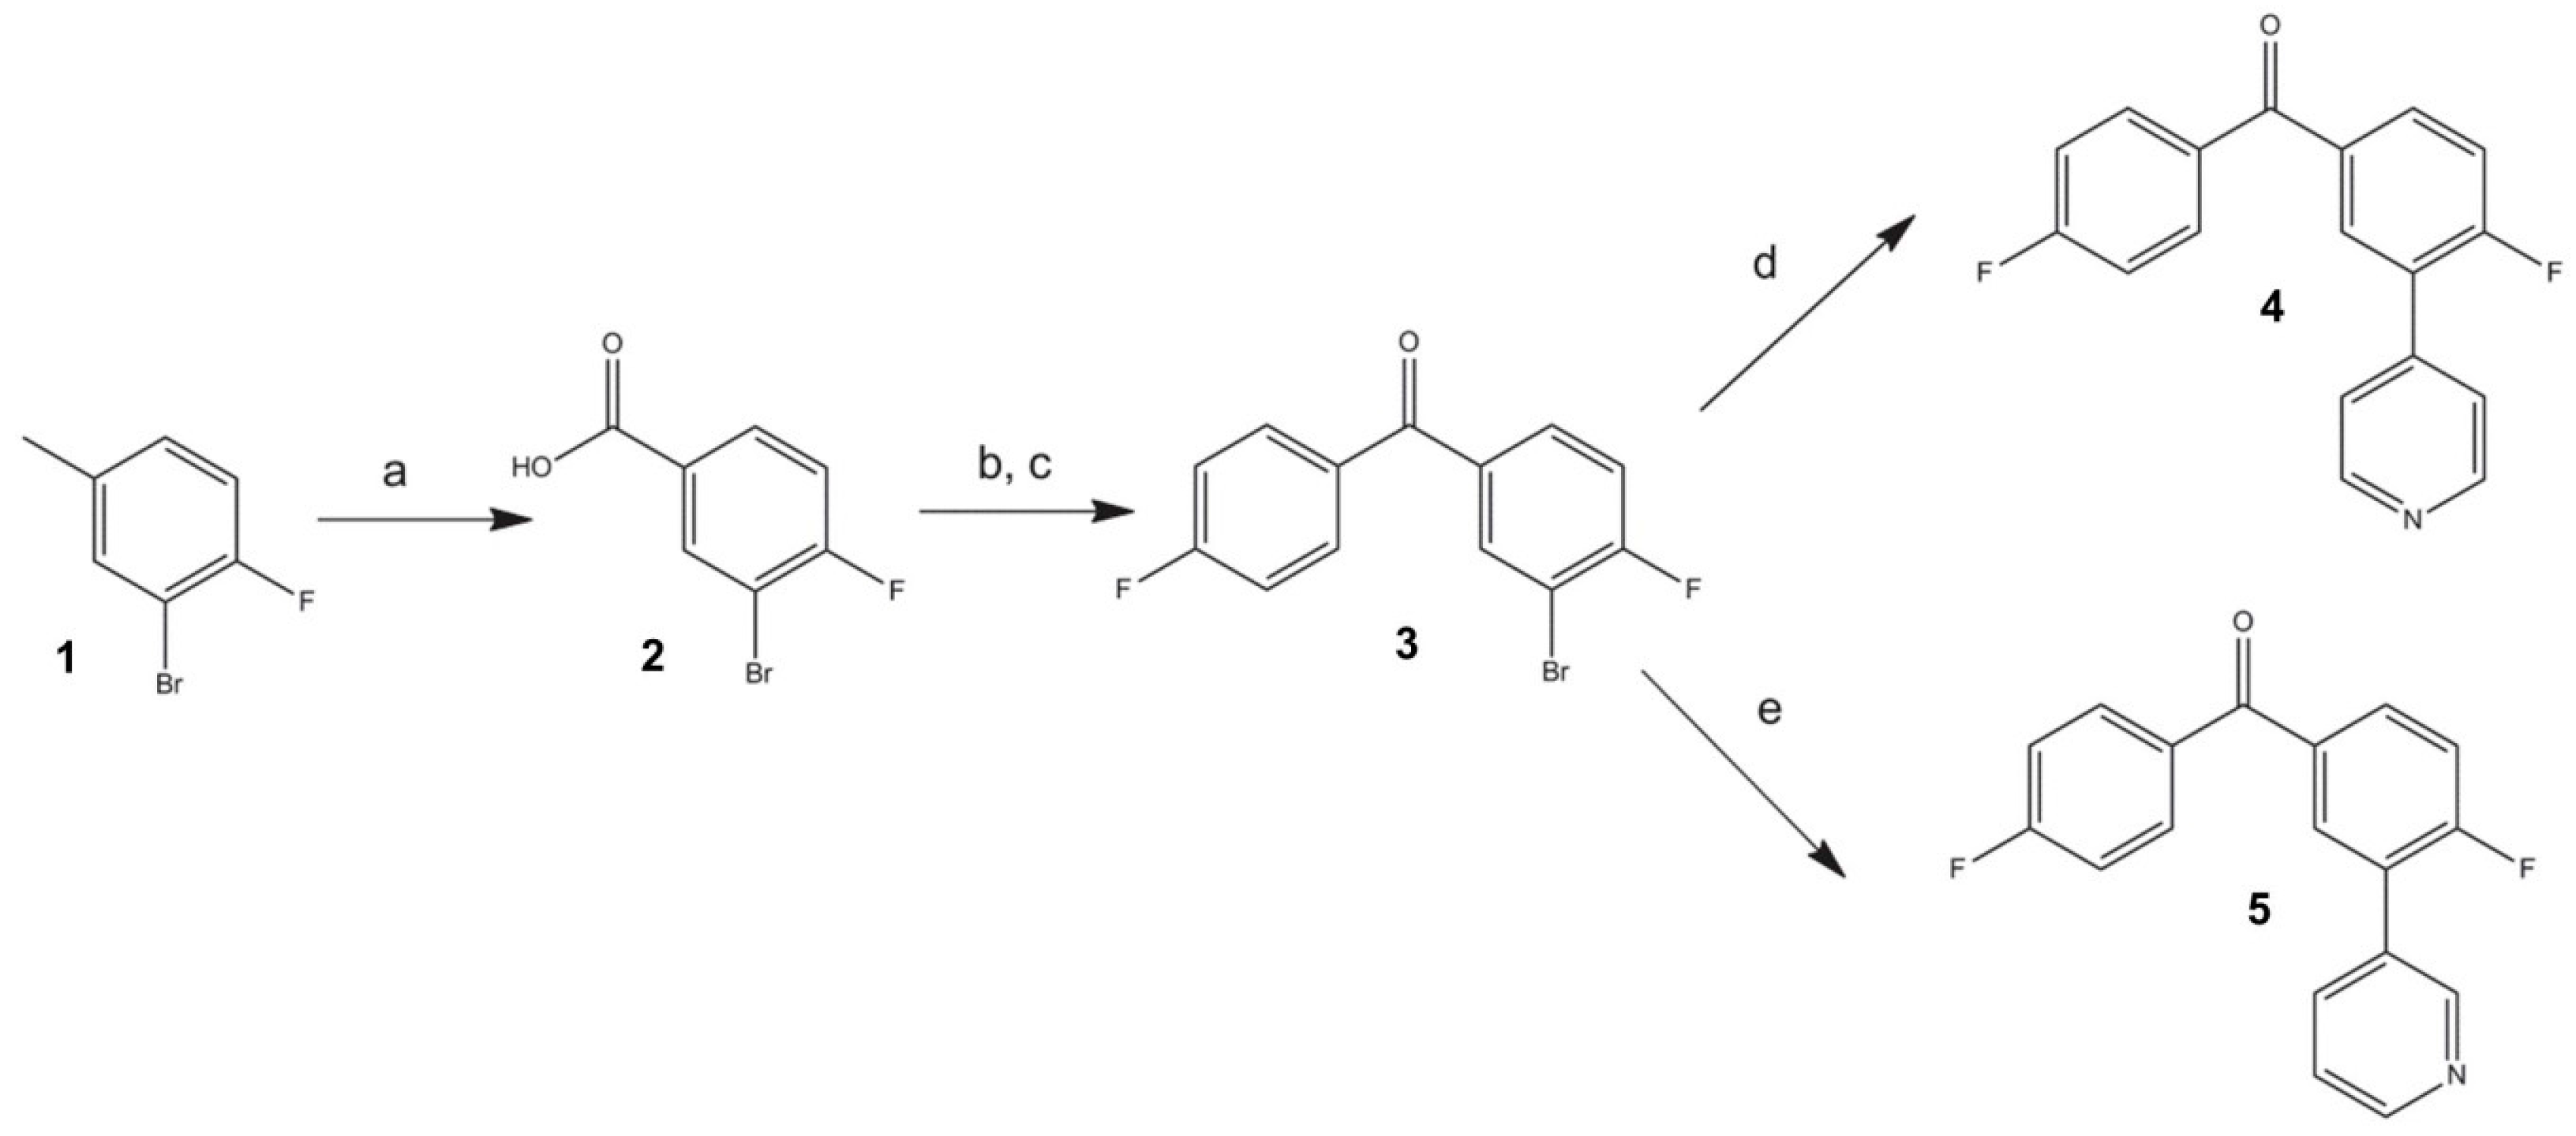 Polymers | Free Full-Text | Synthesis of New Polyether Ether Ketone